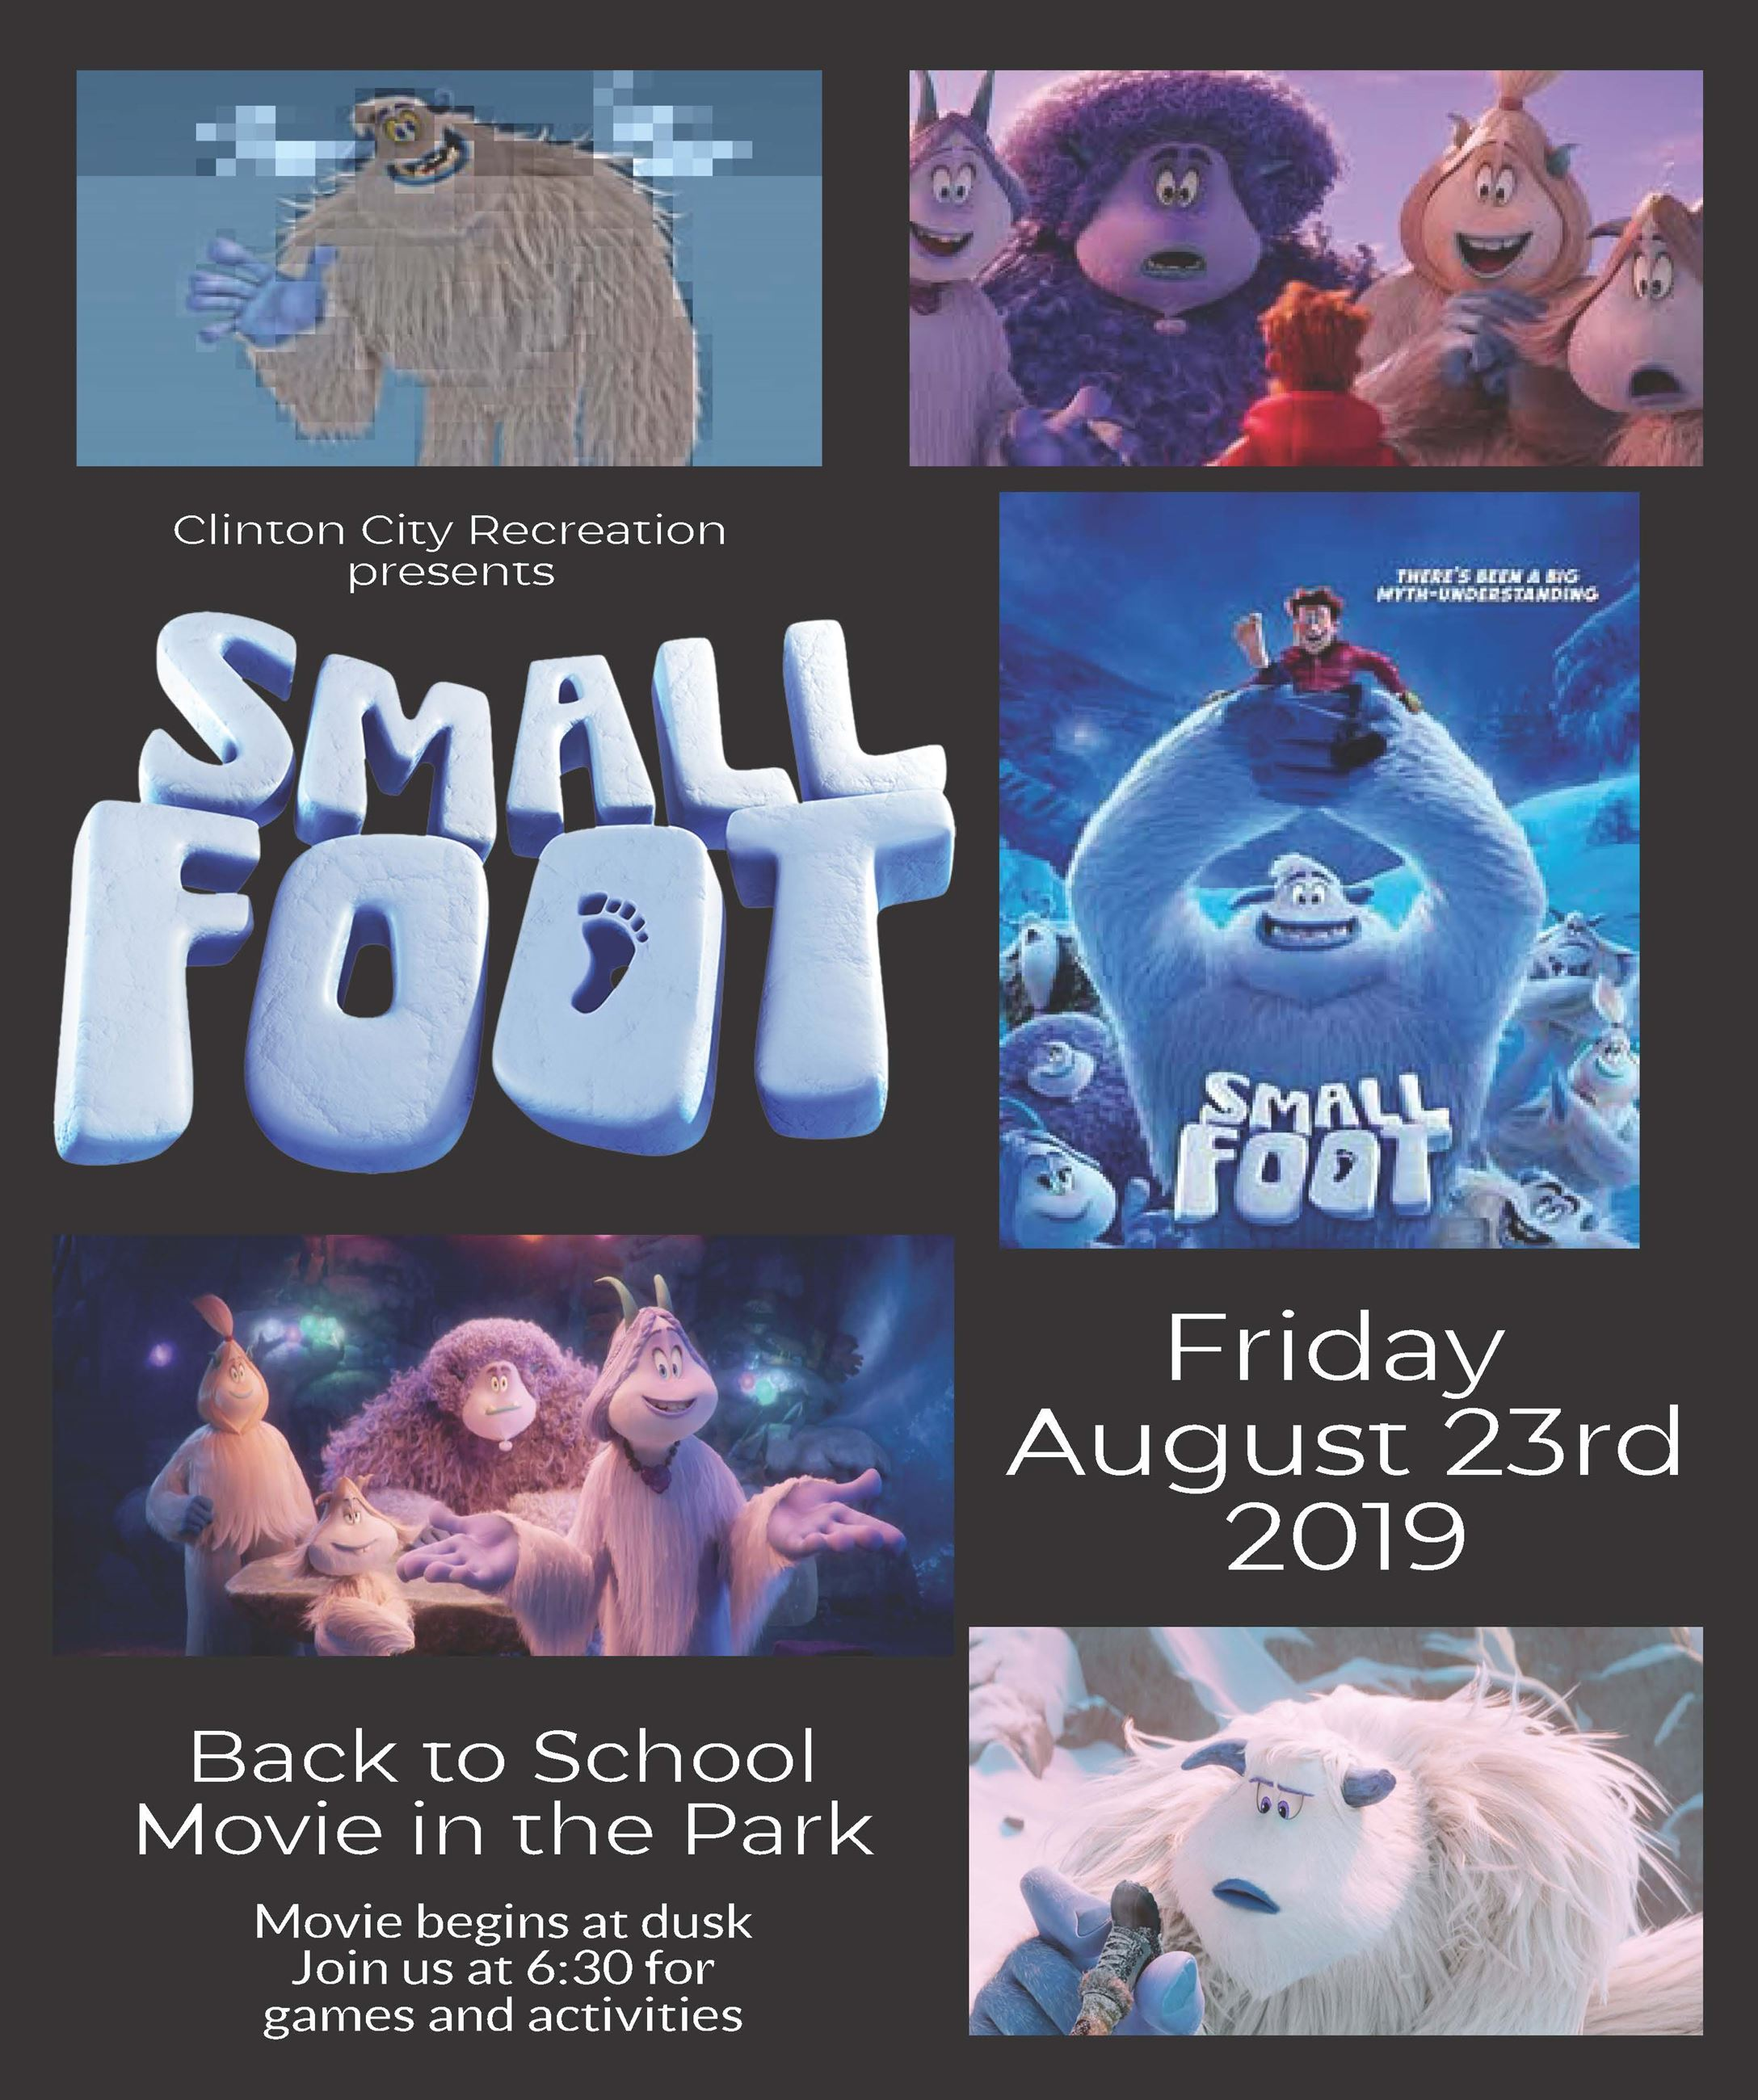 2019 Back to school Movie - Small foot